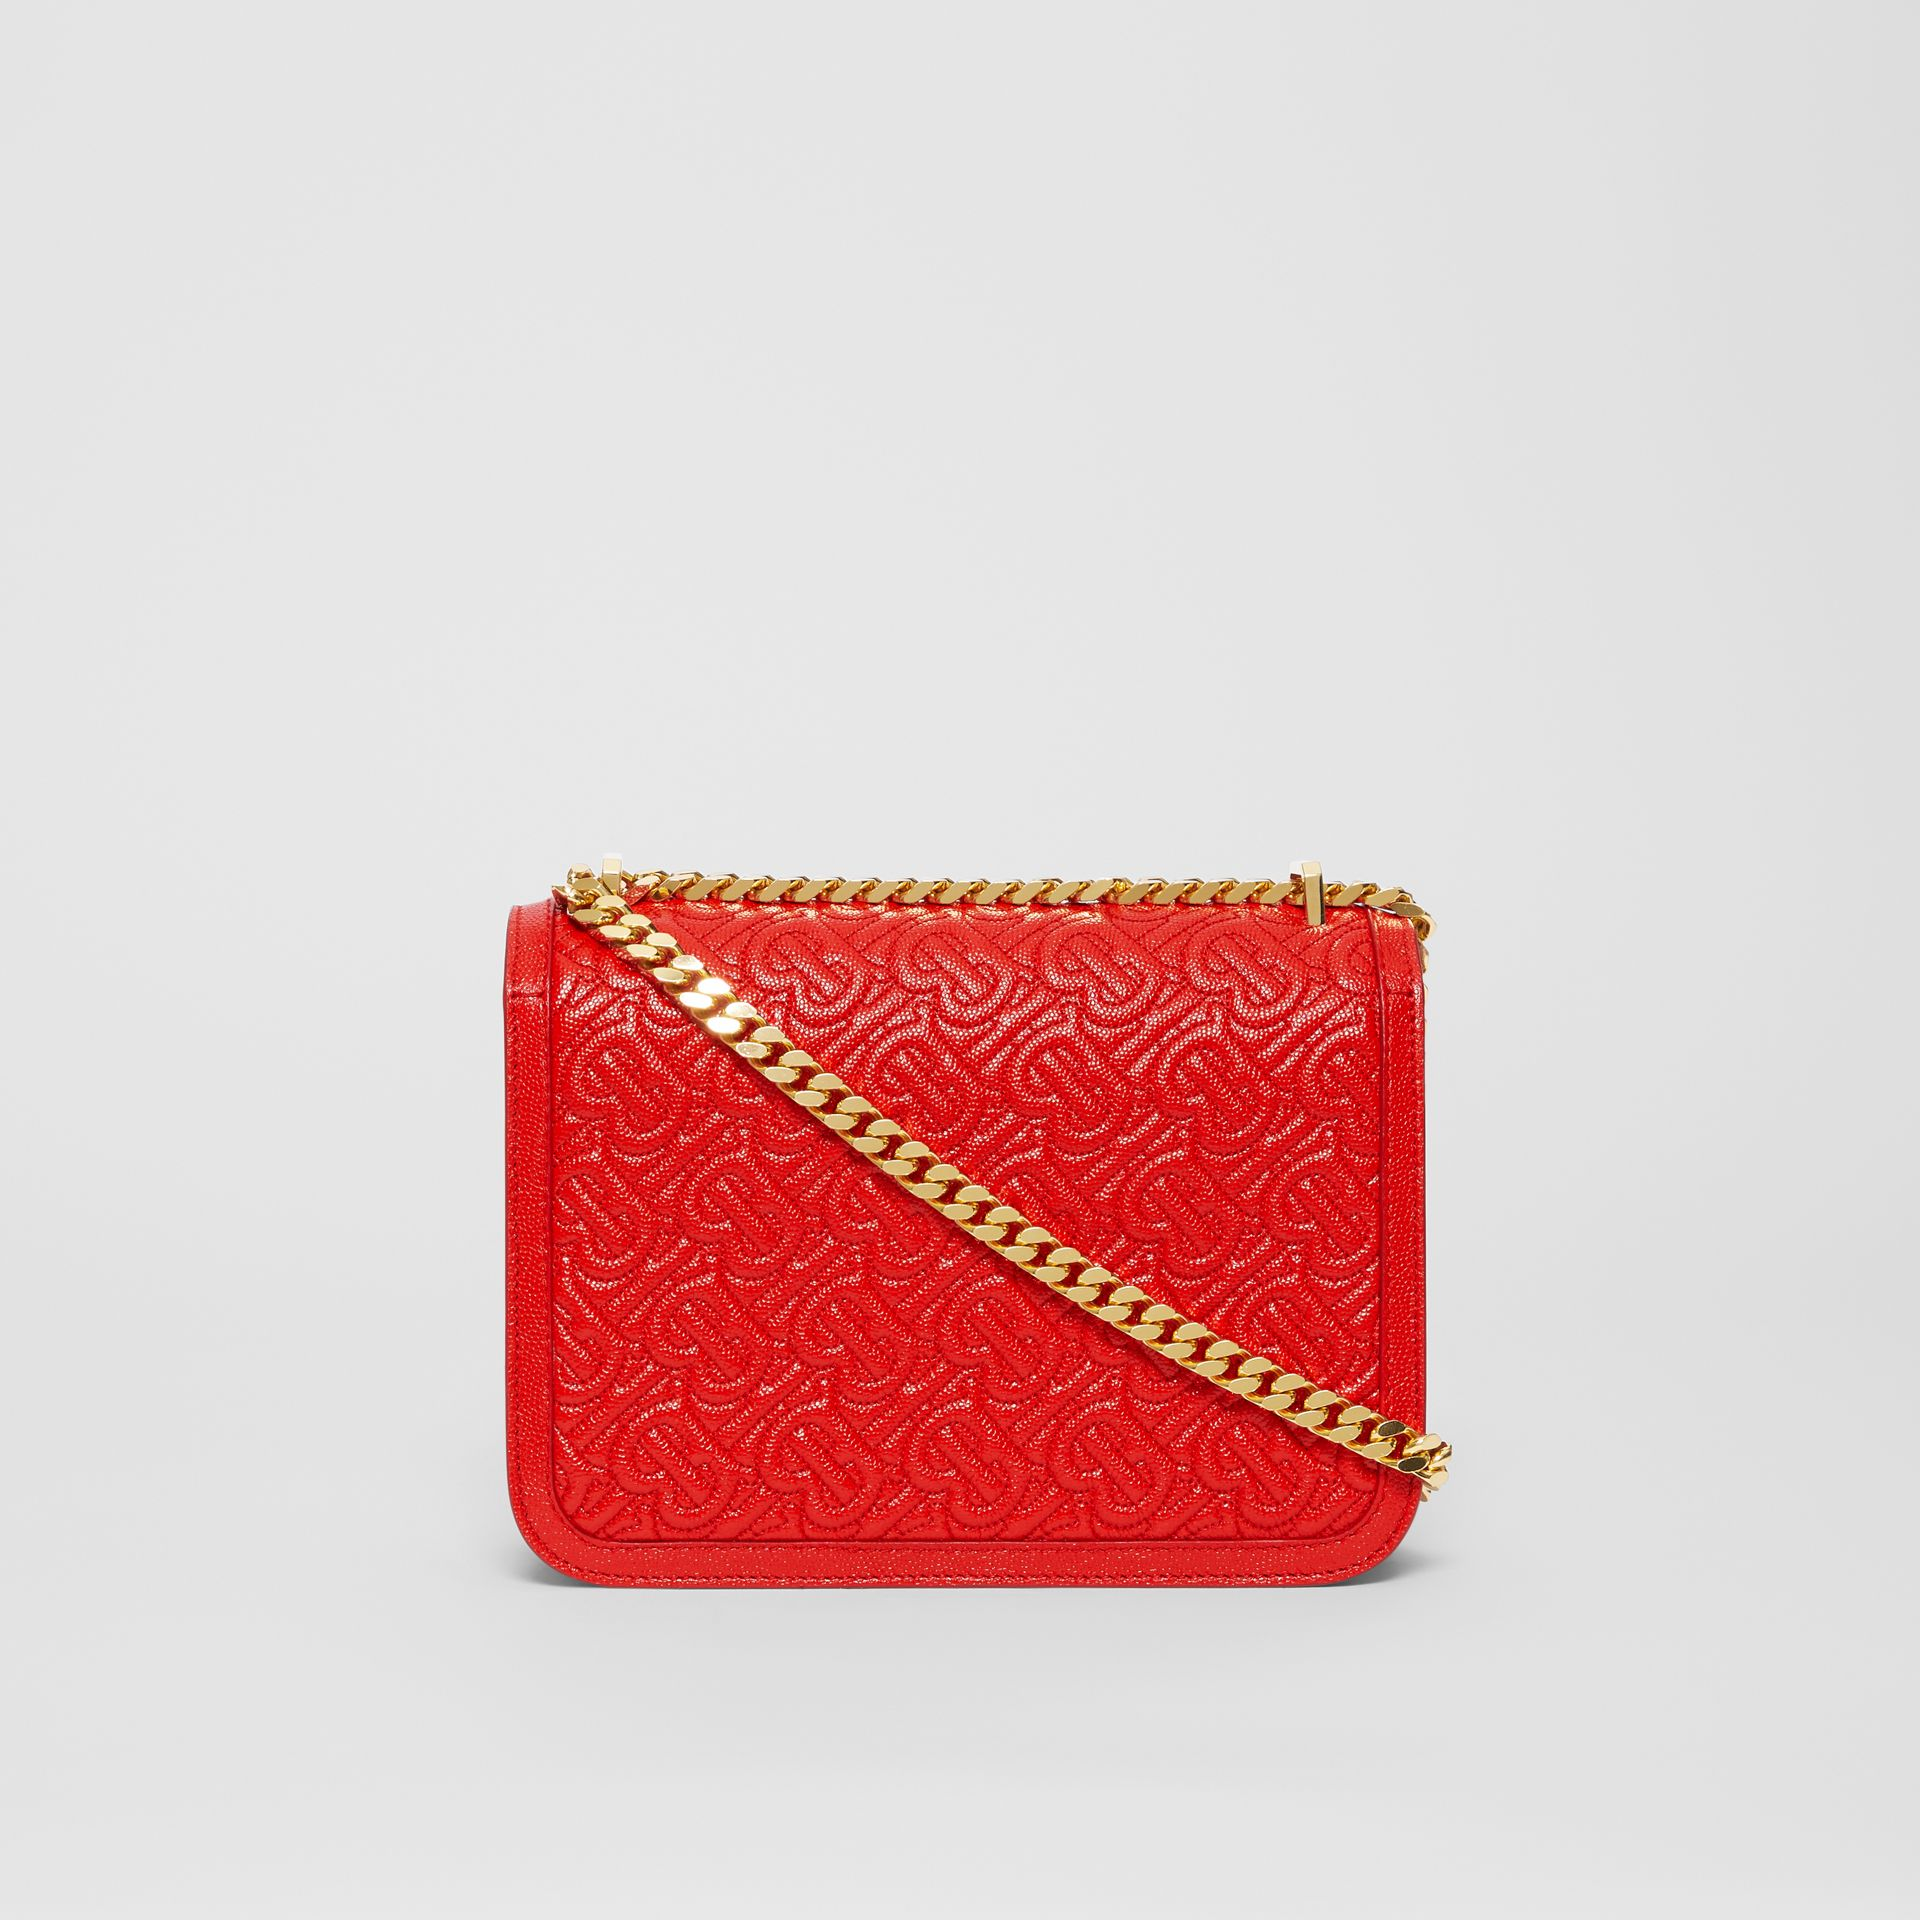 Small Quilted Monogram Leather TB Bag in Bright Red - Women | Burberry United States - gallery image 7